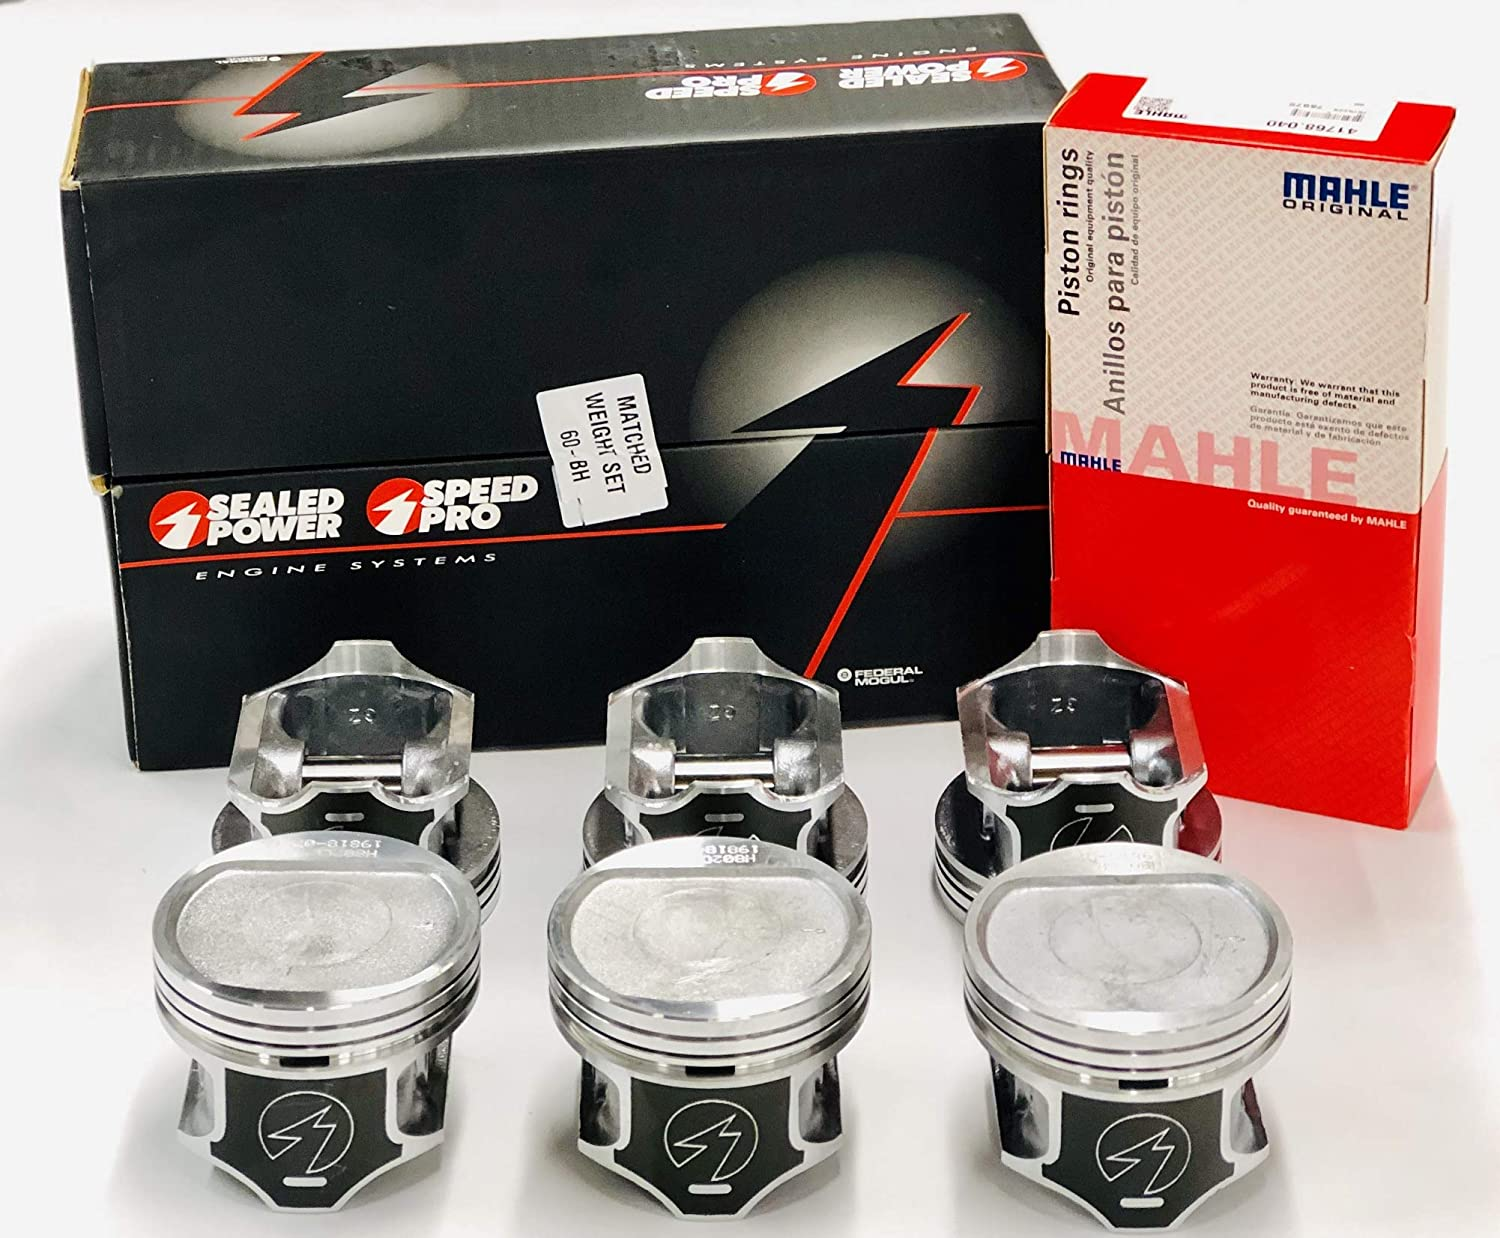 Sealed Power Pistons /& Rings COMBO Set of +.040 or 3.915 Bore 6 compatible with 1996-2006 Jeep Cherokee Wagoneer 4.0 4.0L 242.